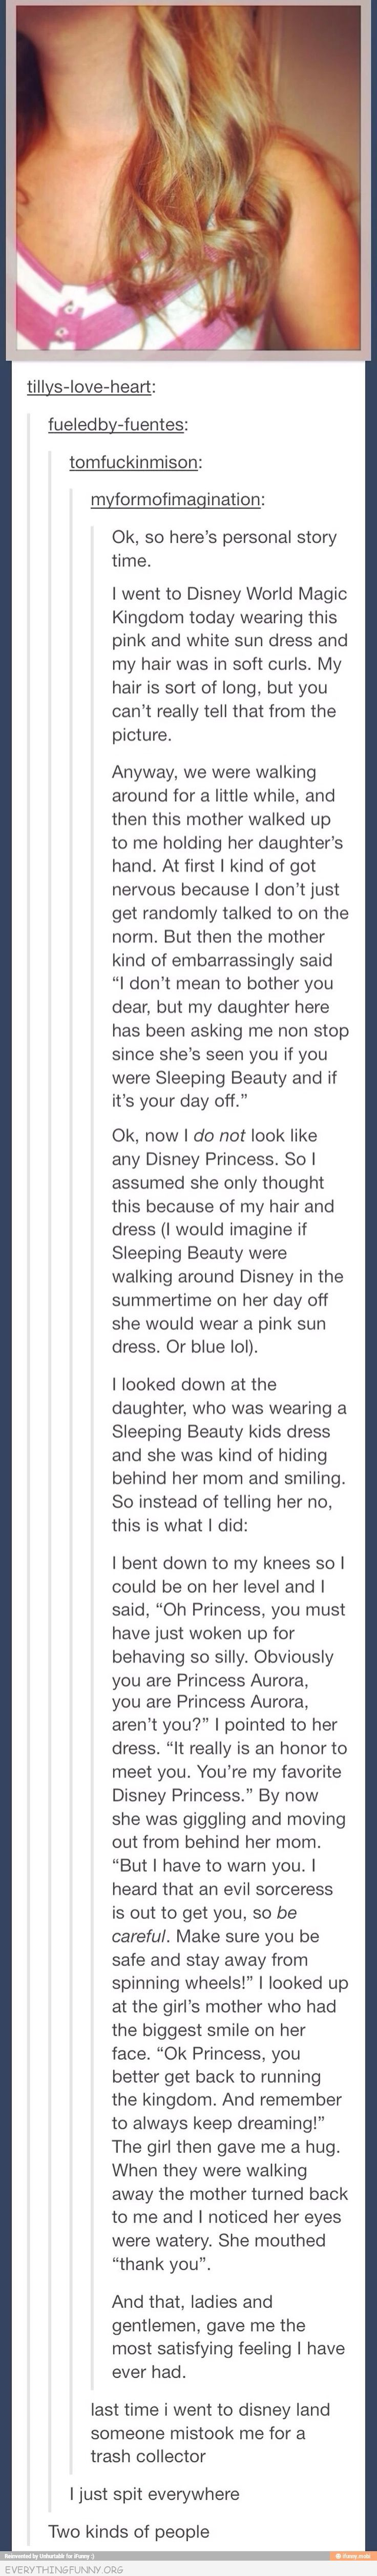 funny tumblr post two kinds of people secret princess